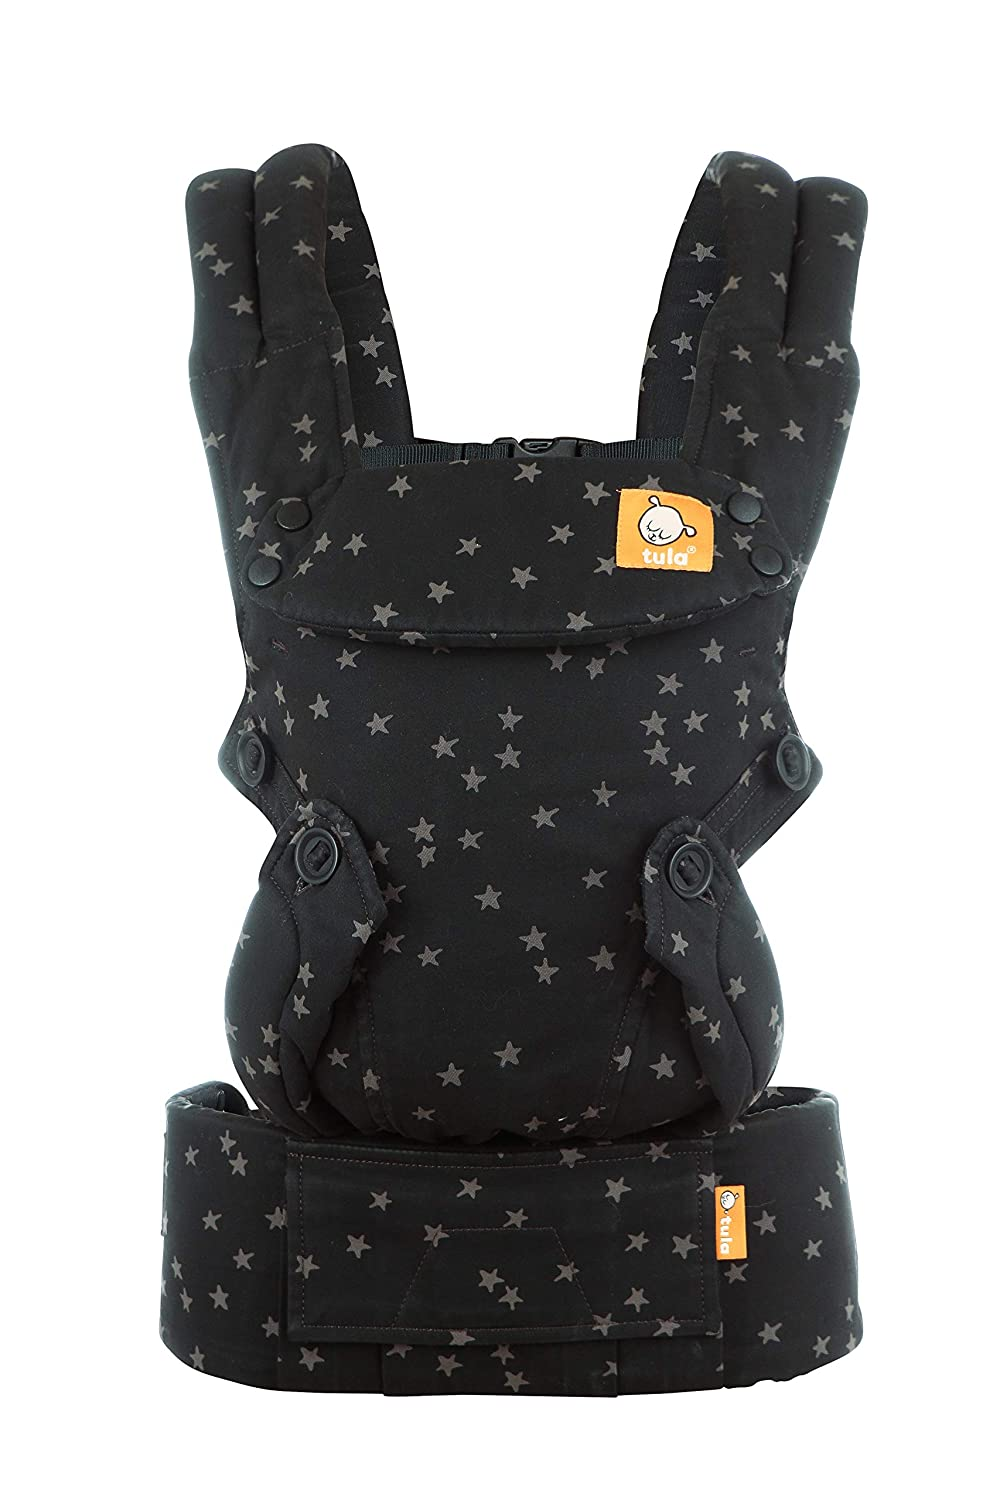 Baby Tula Discover Free-to-Grow Baby Carrier, Adjustable Newborn to Toddler Carrier, Ergonomic and Multiple Positions for 7 – 45 pounds, Black with Gray Stars